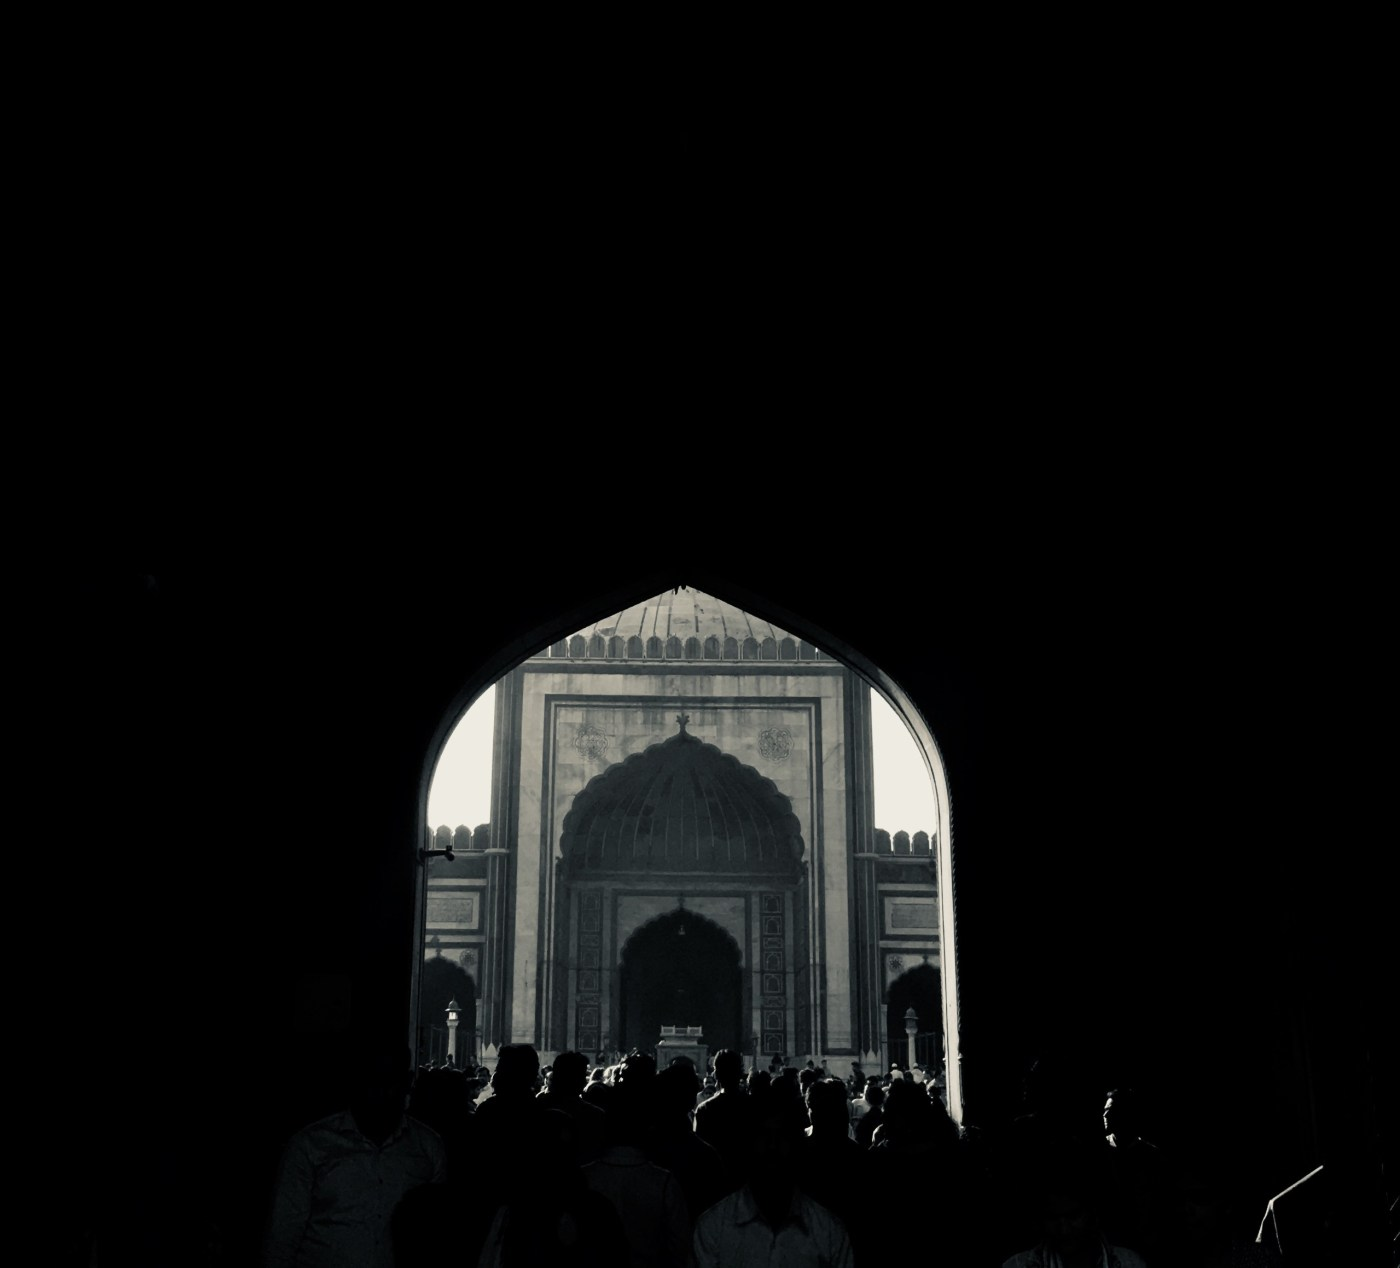 Jama Masjid Gate 1 |  The largest mosque in India